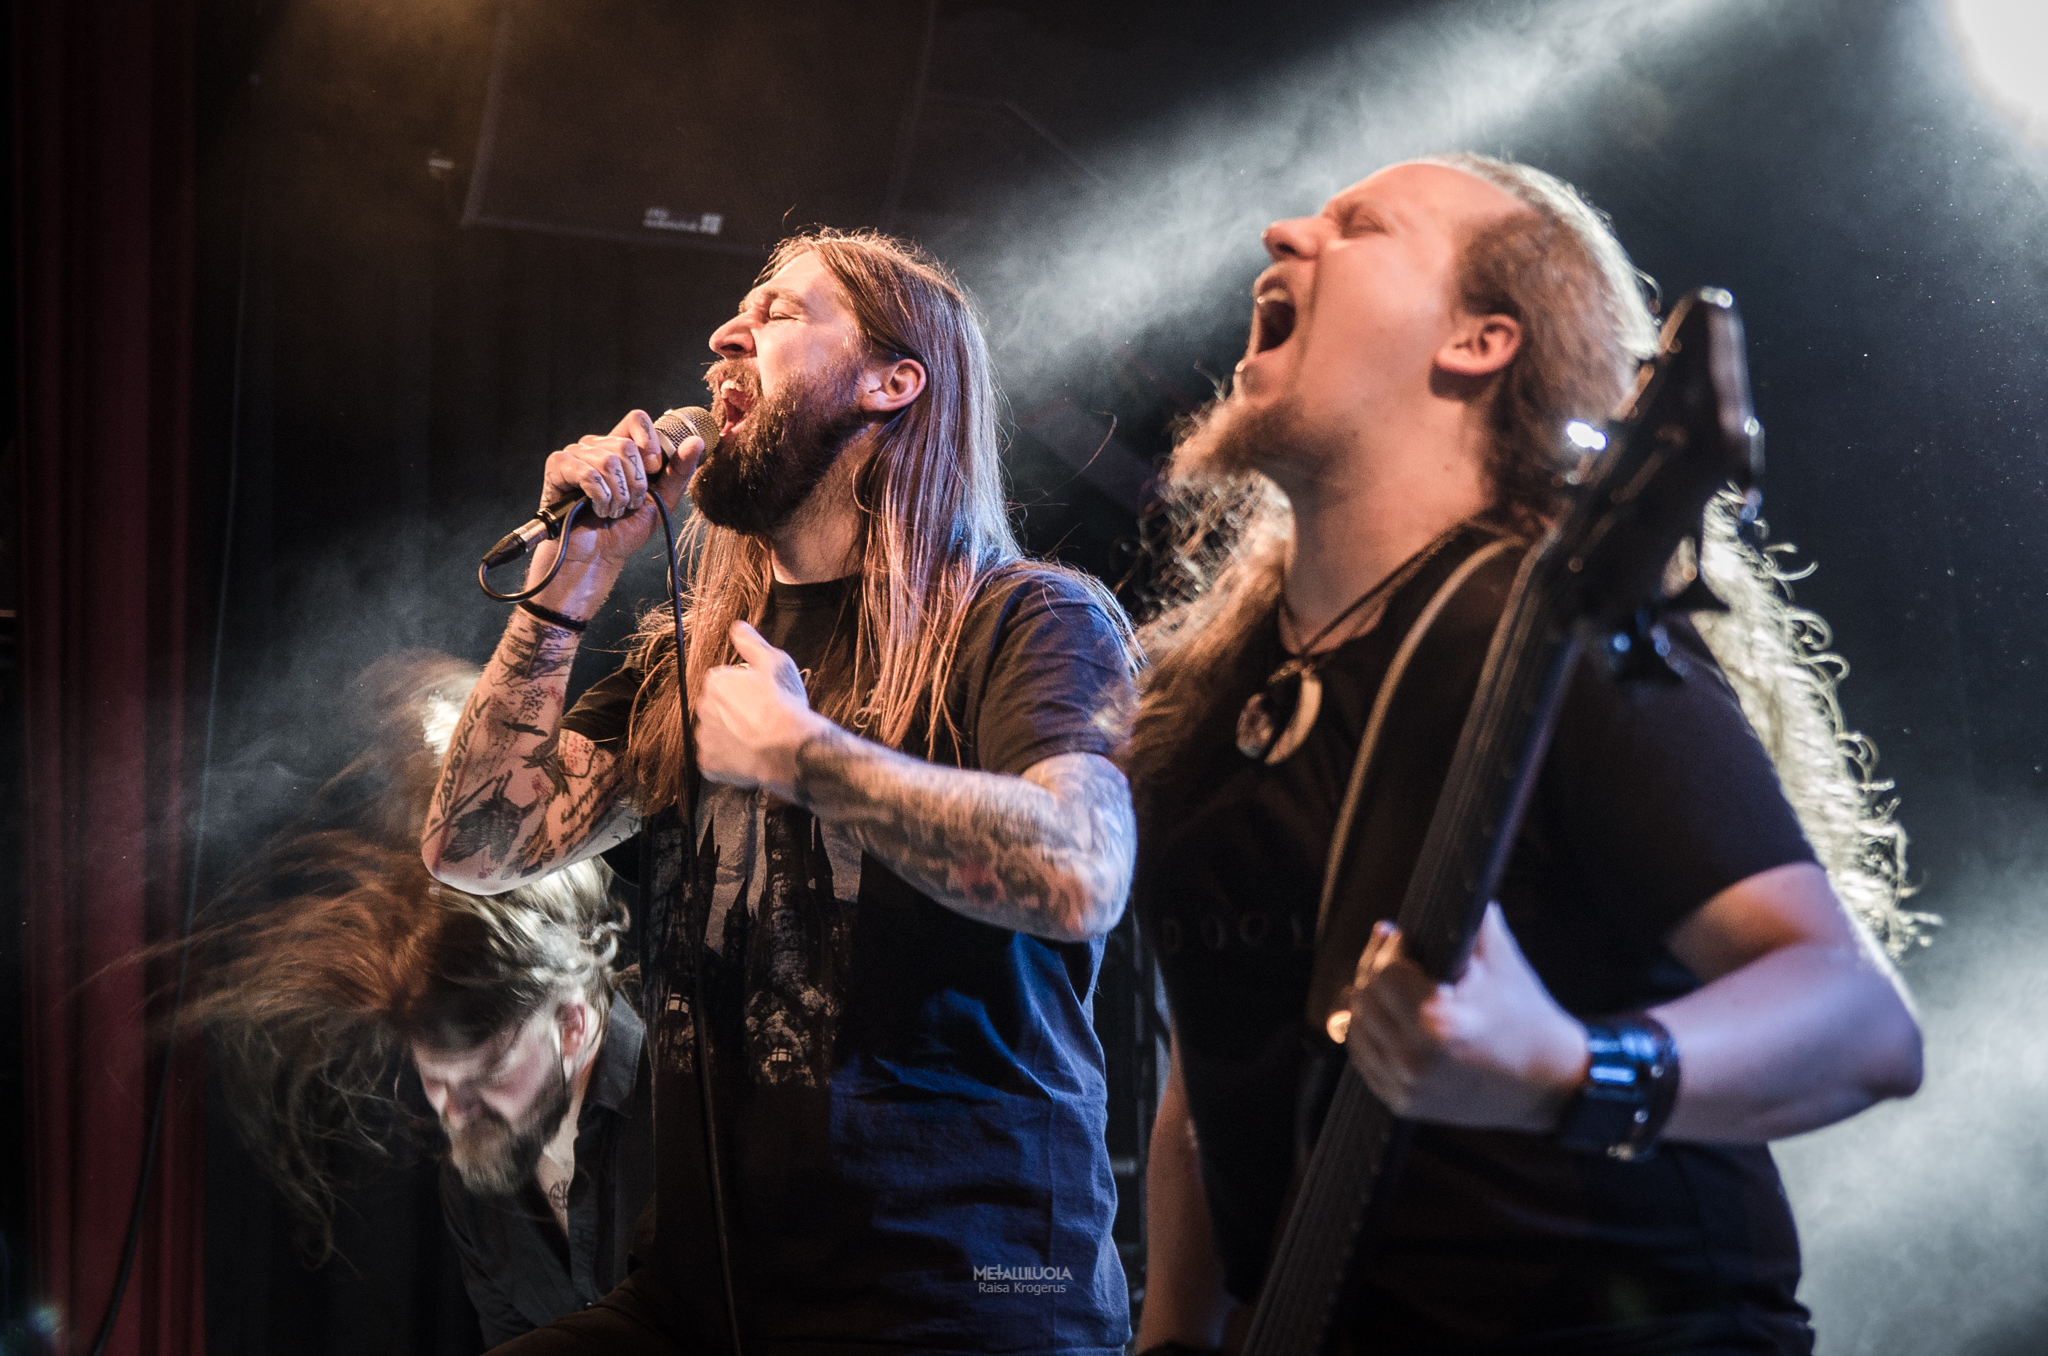 Harakiri For The Sky on stage in Metal Crane 2018, Helsinki